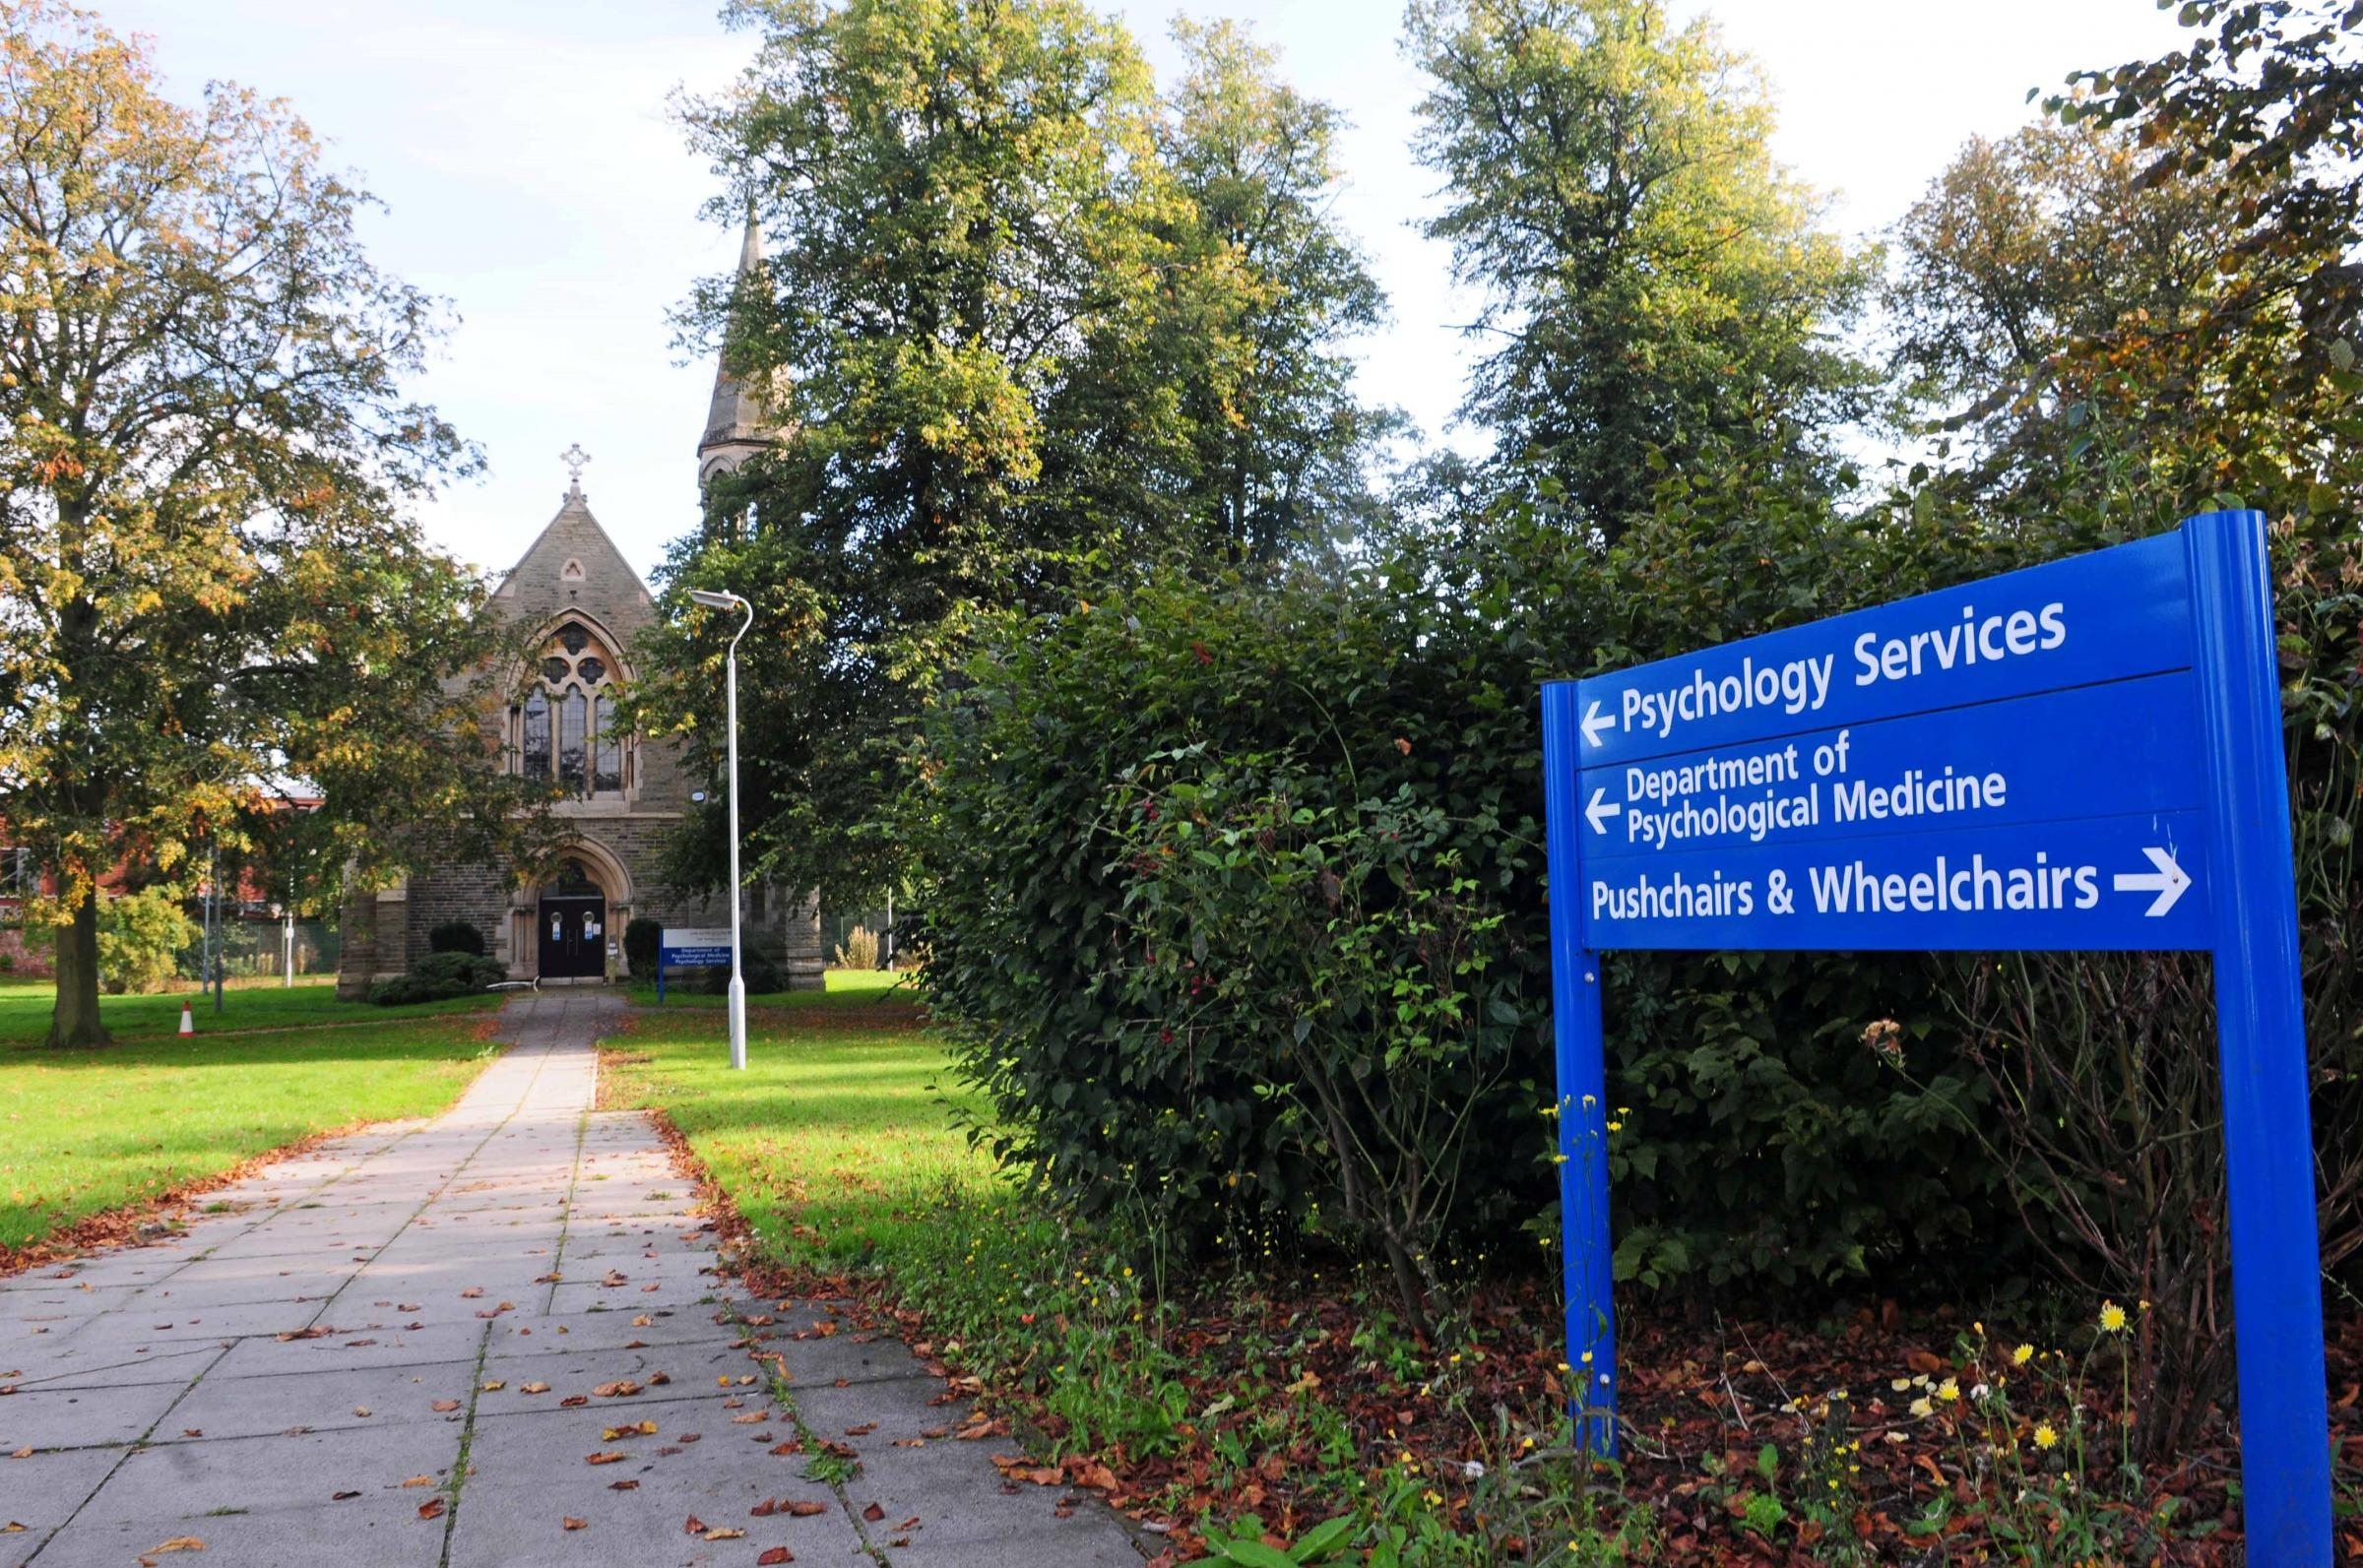 Bootham Park closed on October 1